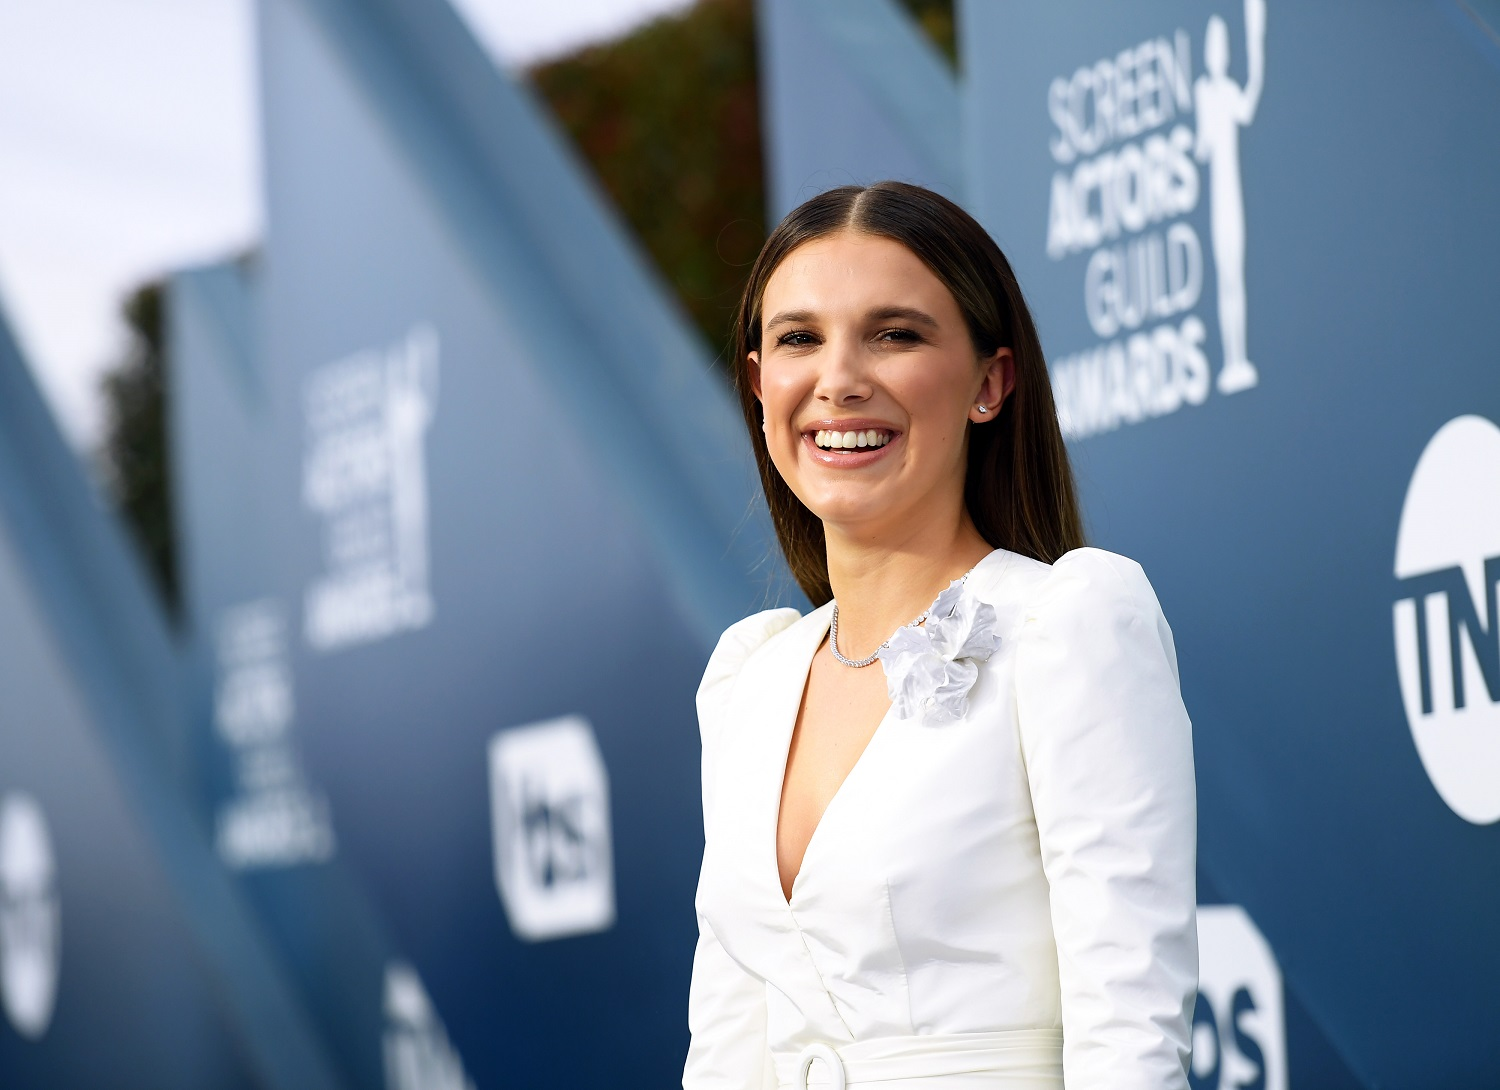 Stranger Things and Enola Holmes star Millie Bobby Brown appears to be dating Jake Bongiovi